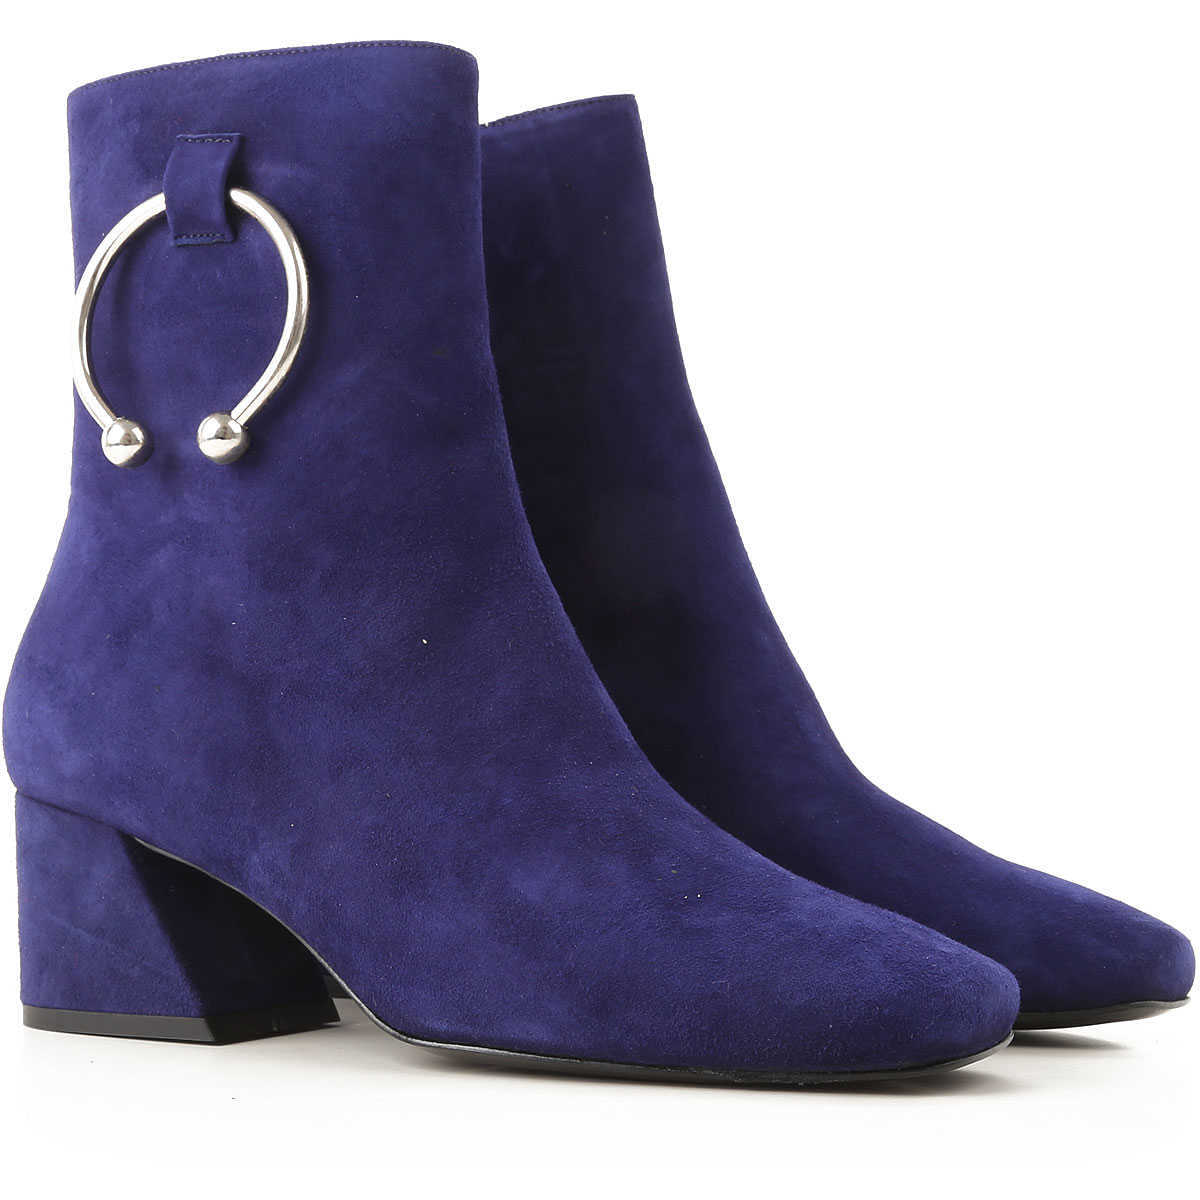 Dorateymur Boots for Women Booties On Sale DK - GOOFASH - Womens BOOTS